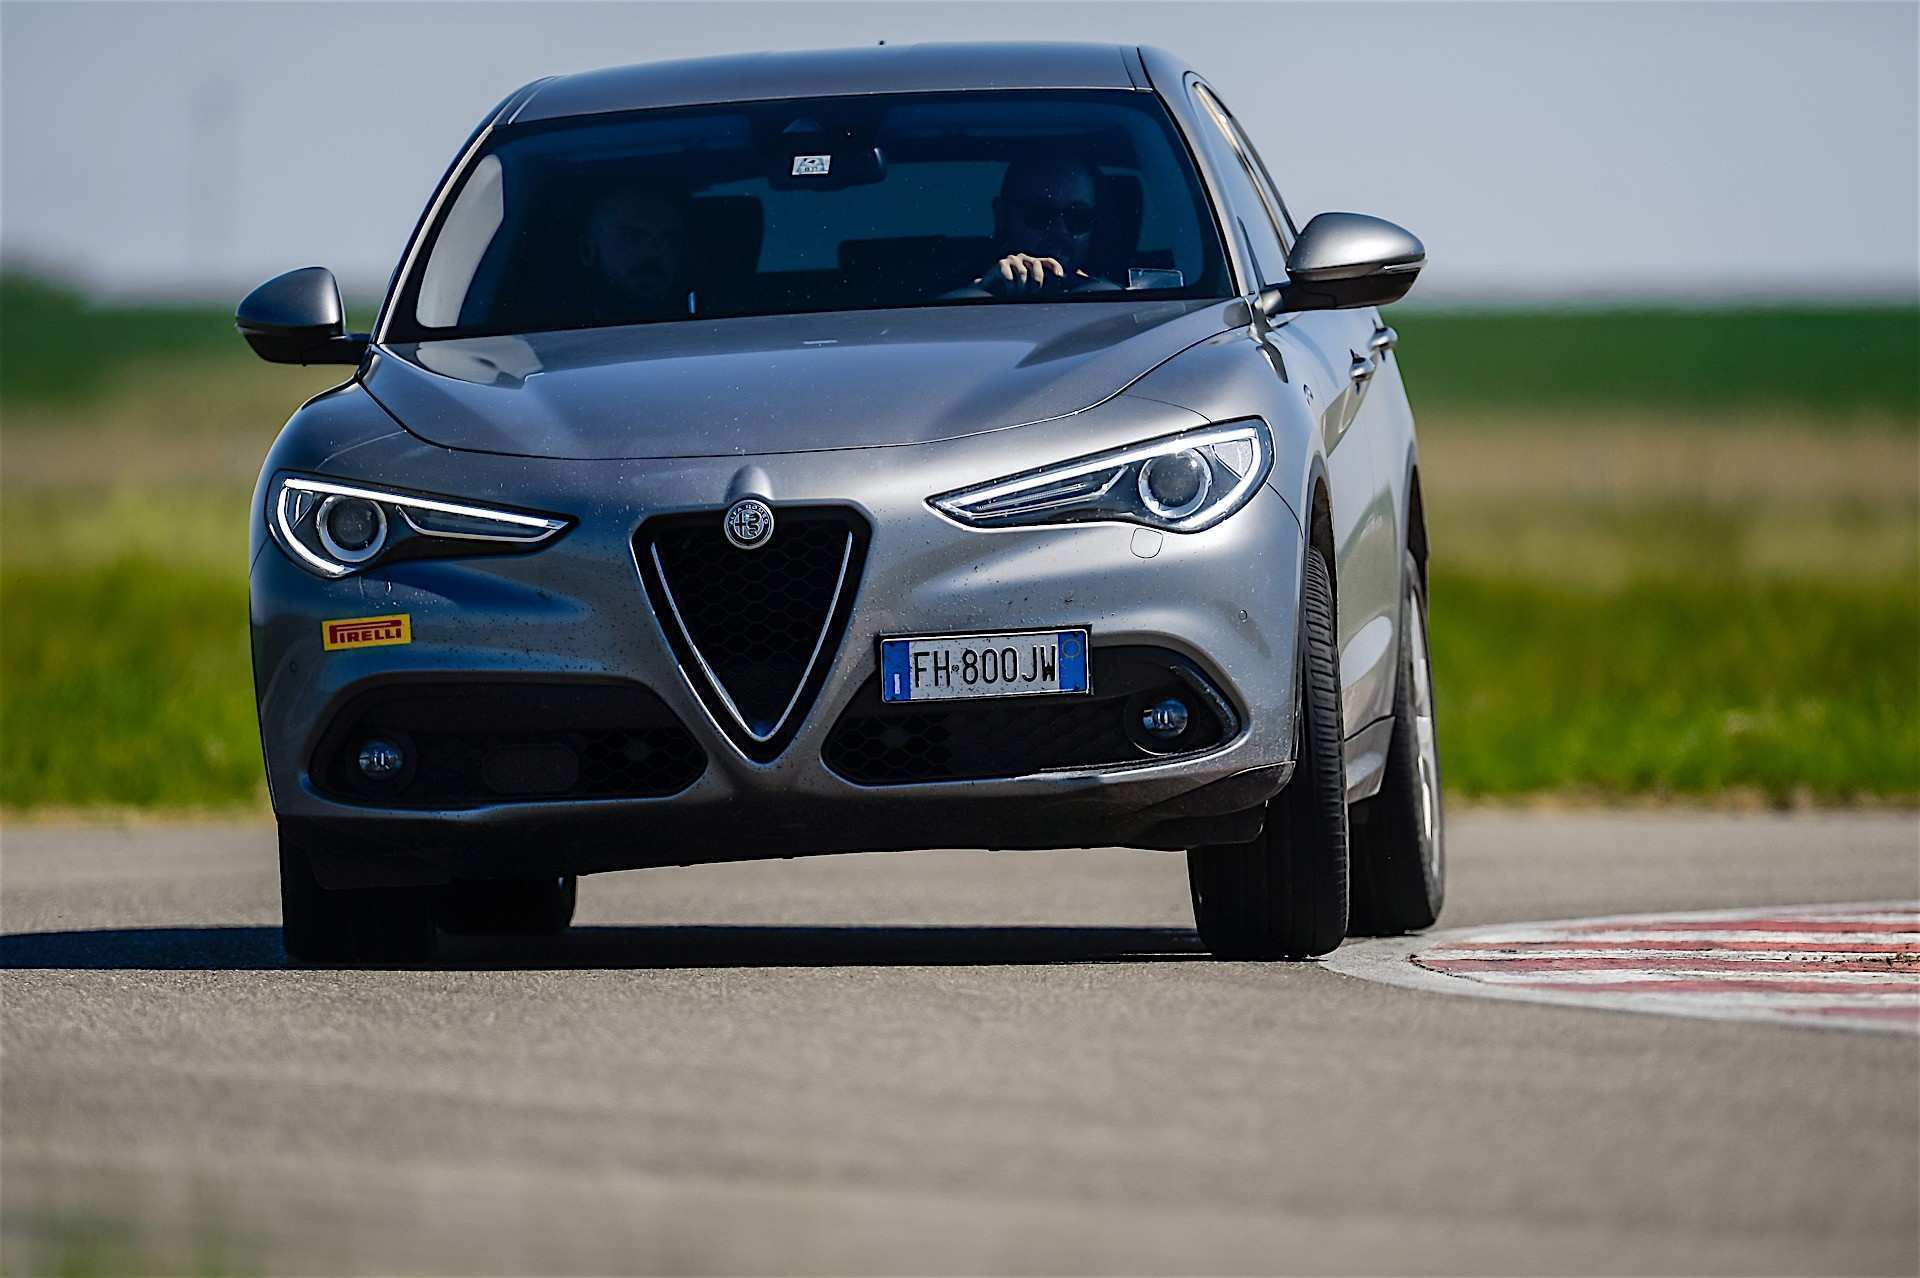 14 Great 2020 Alfa Romeo Stelvio Configurations for 2020 Alfa Romeo Stelvio